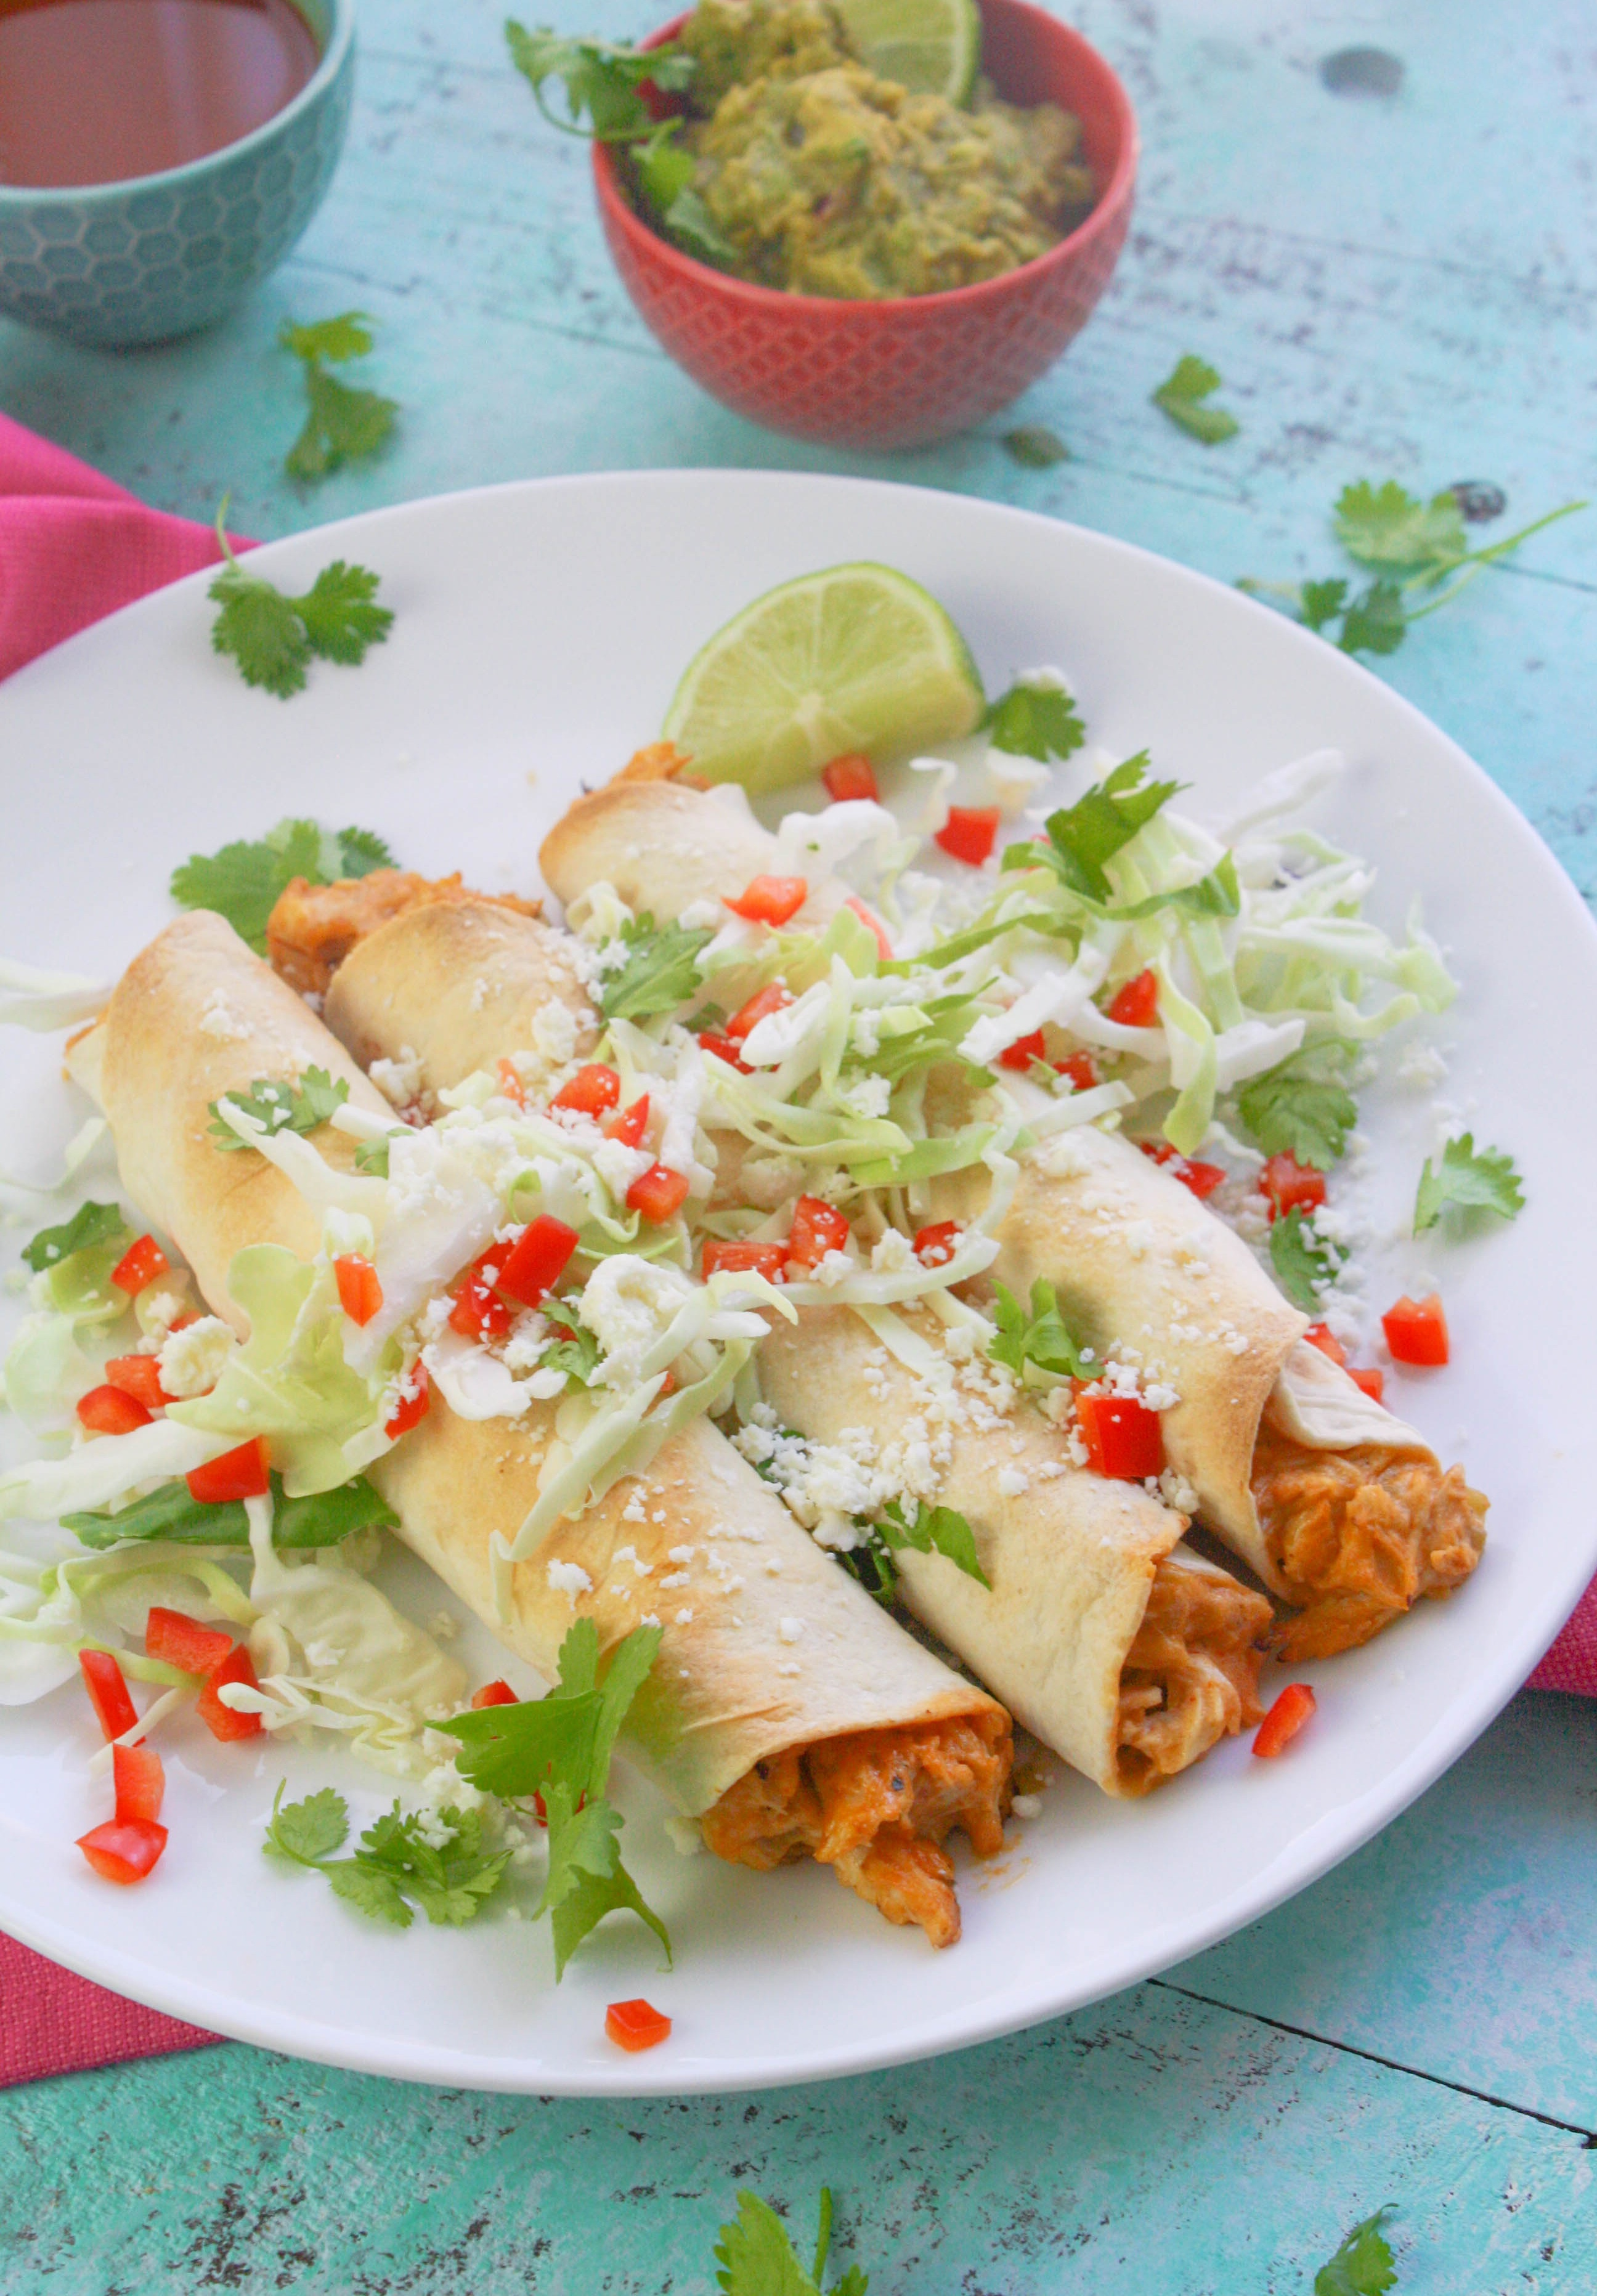 Baked Chicken and Green Chile Taquitos are perfect as a snack or as part of a light meal. Baked Chicken and Green Chile Taquitos are so easy to make and fun to serve!